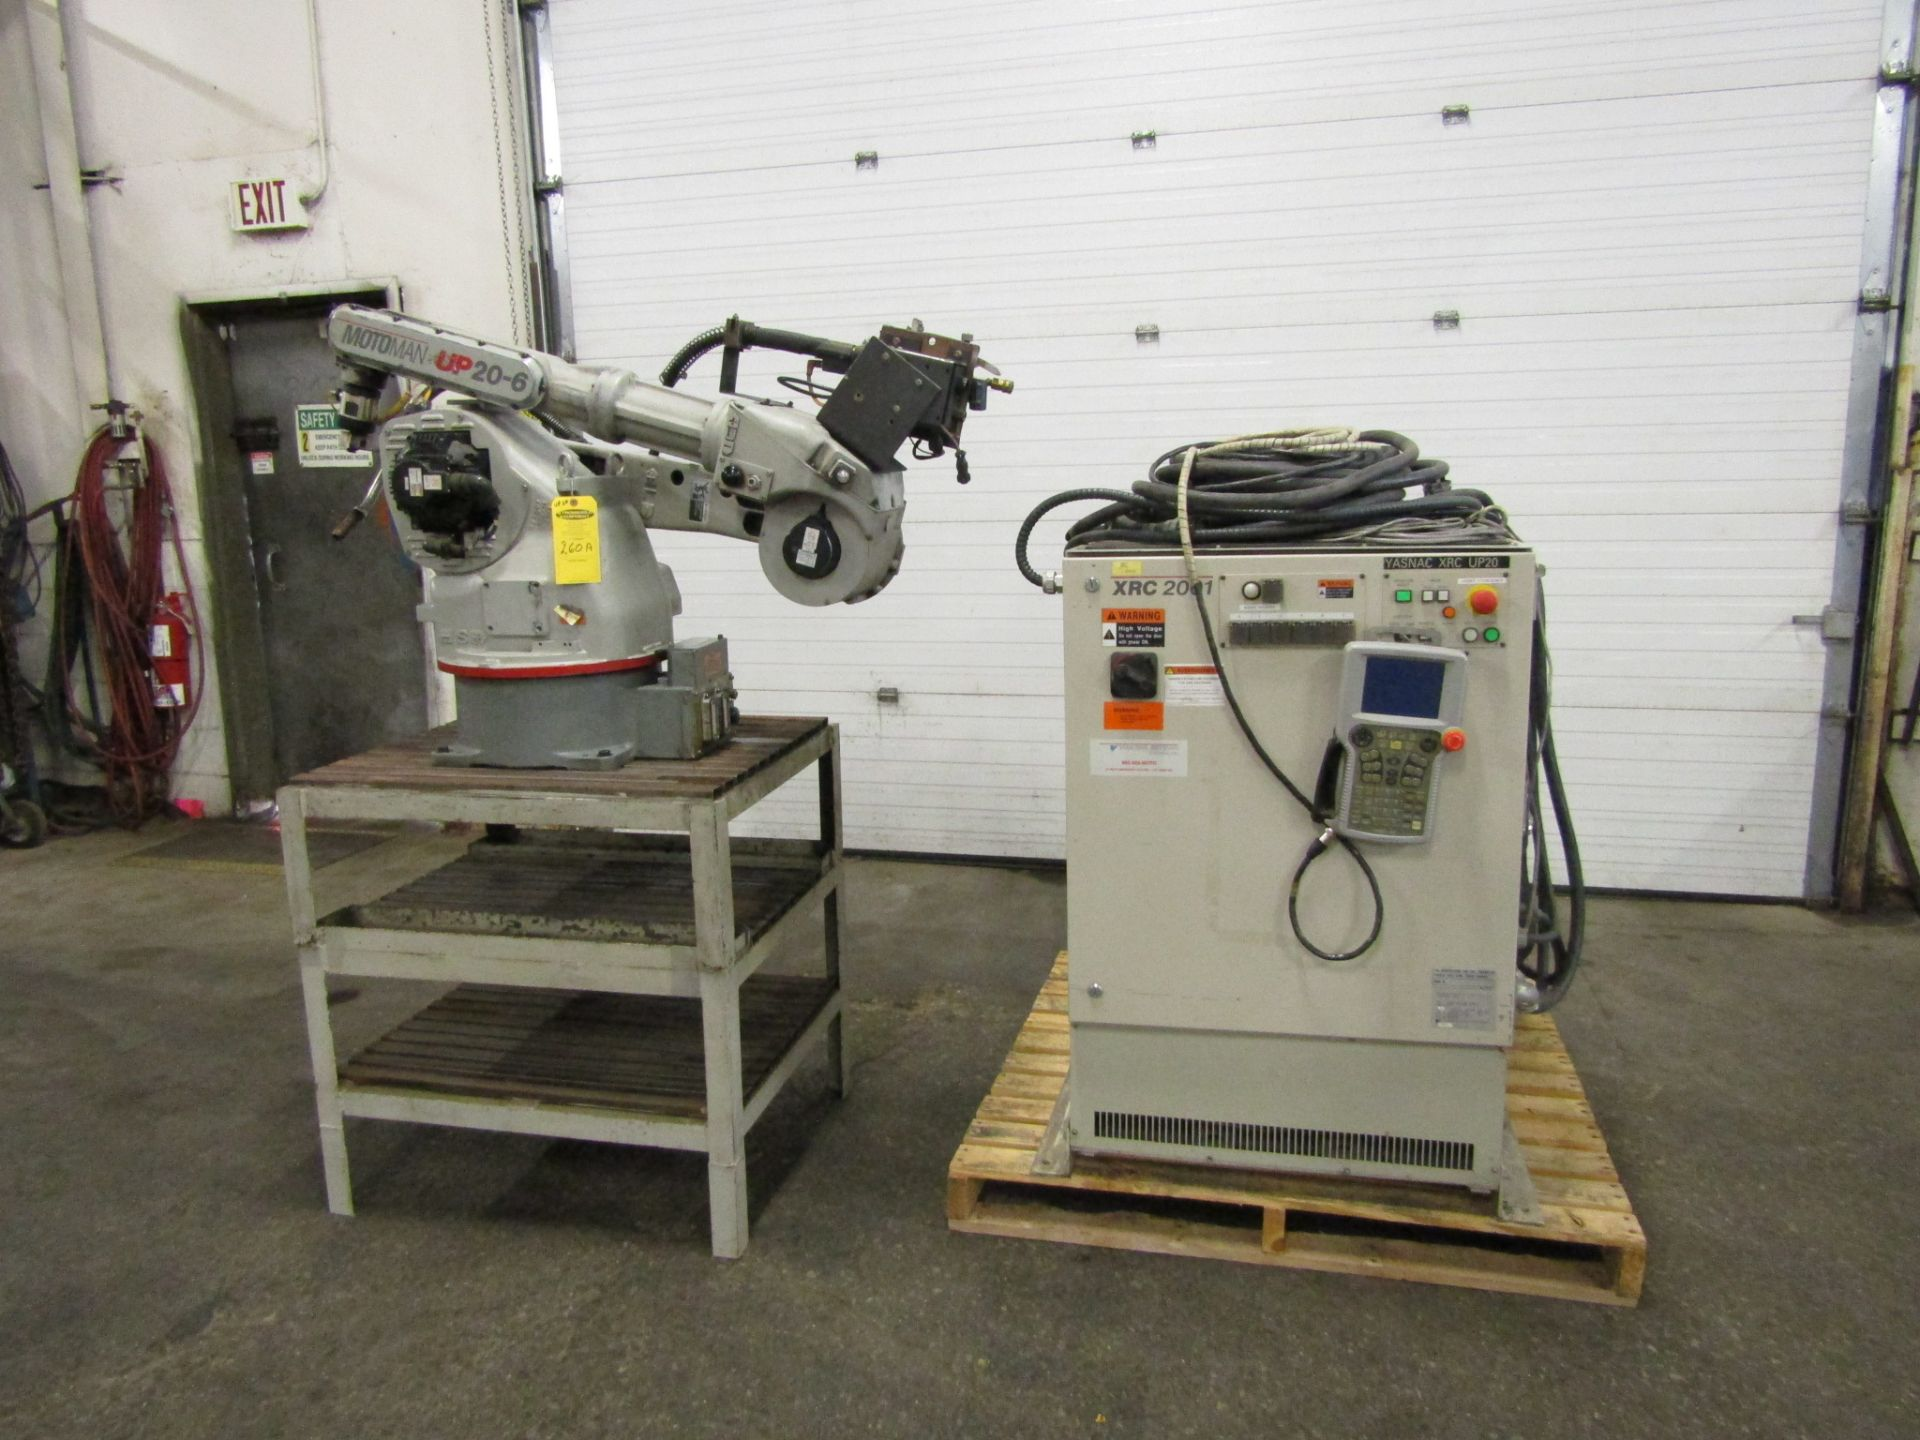 Lot 268 - Motoman UP20-6 Welding Robot System with XRC 2001 controller with teach pendant & Powerwave 450